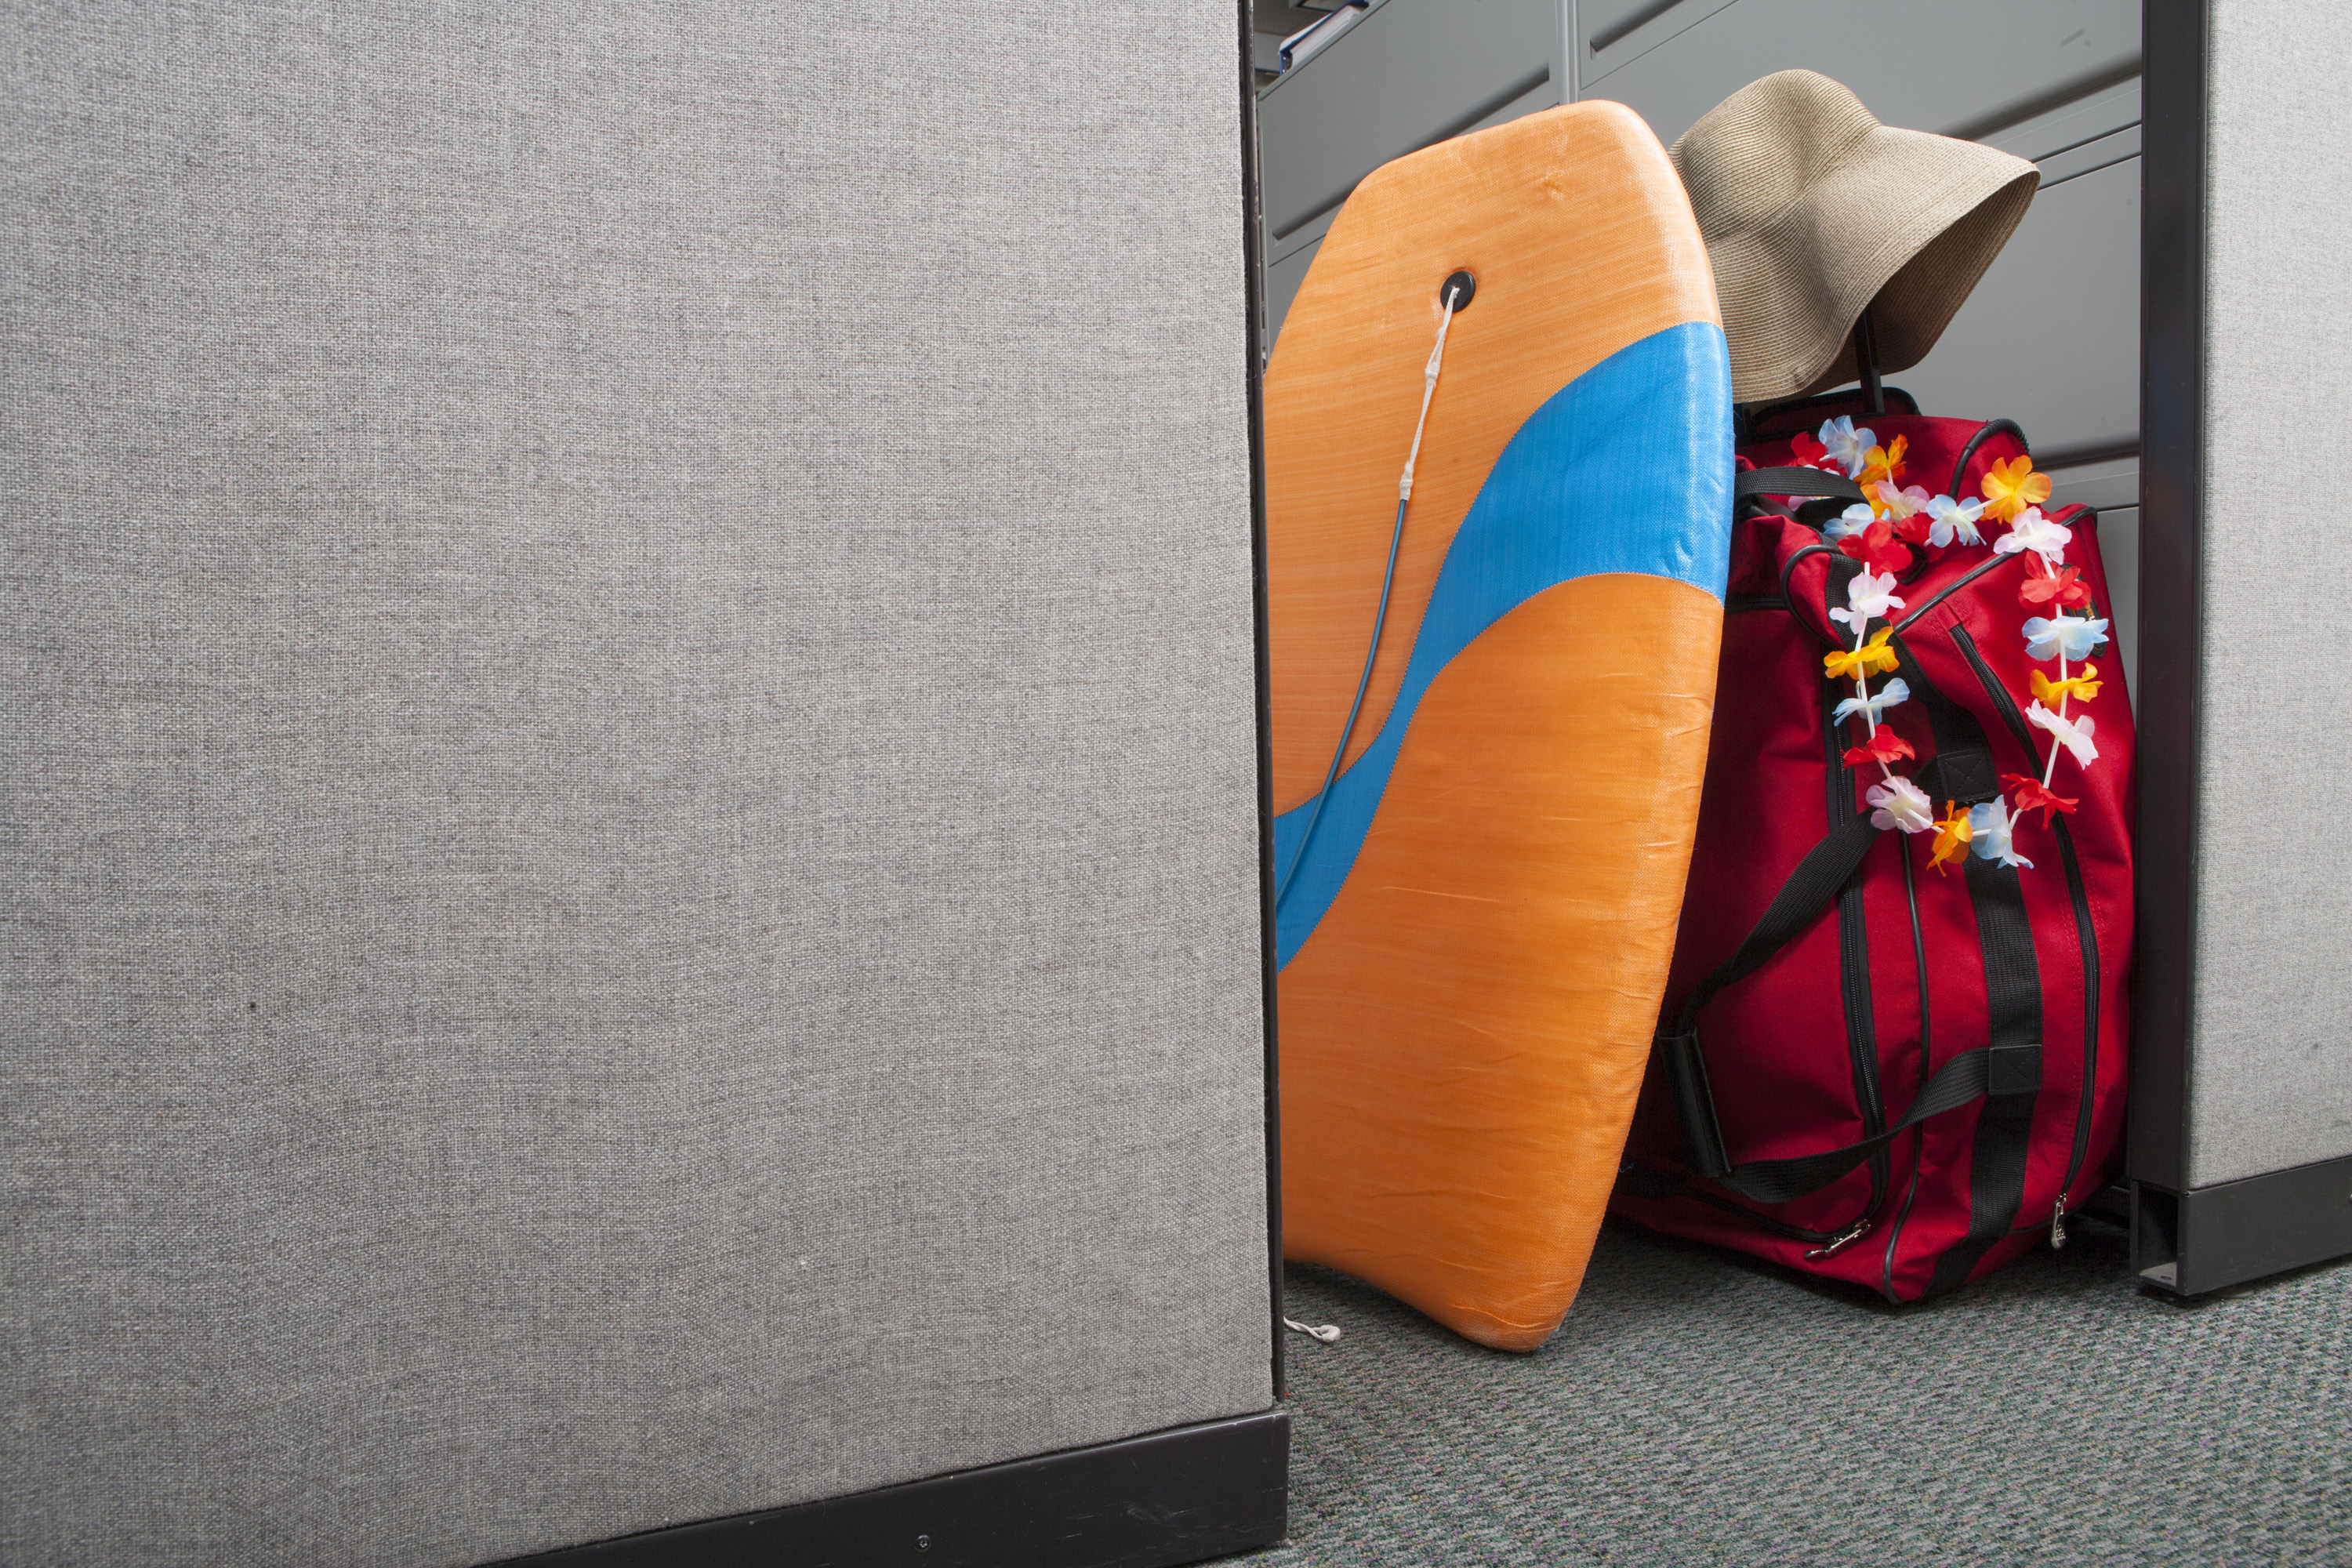 Beach items in office